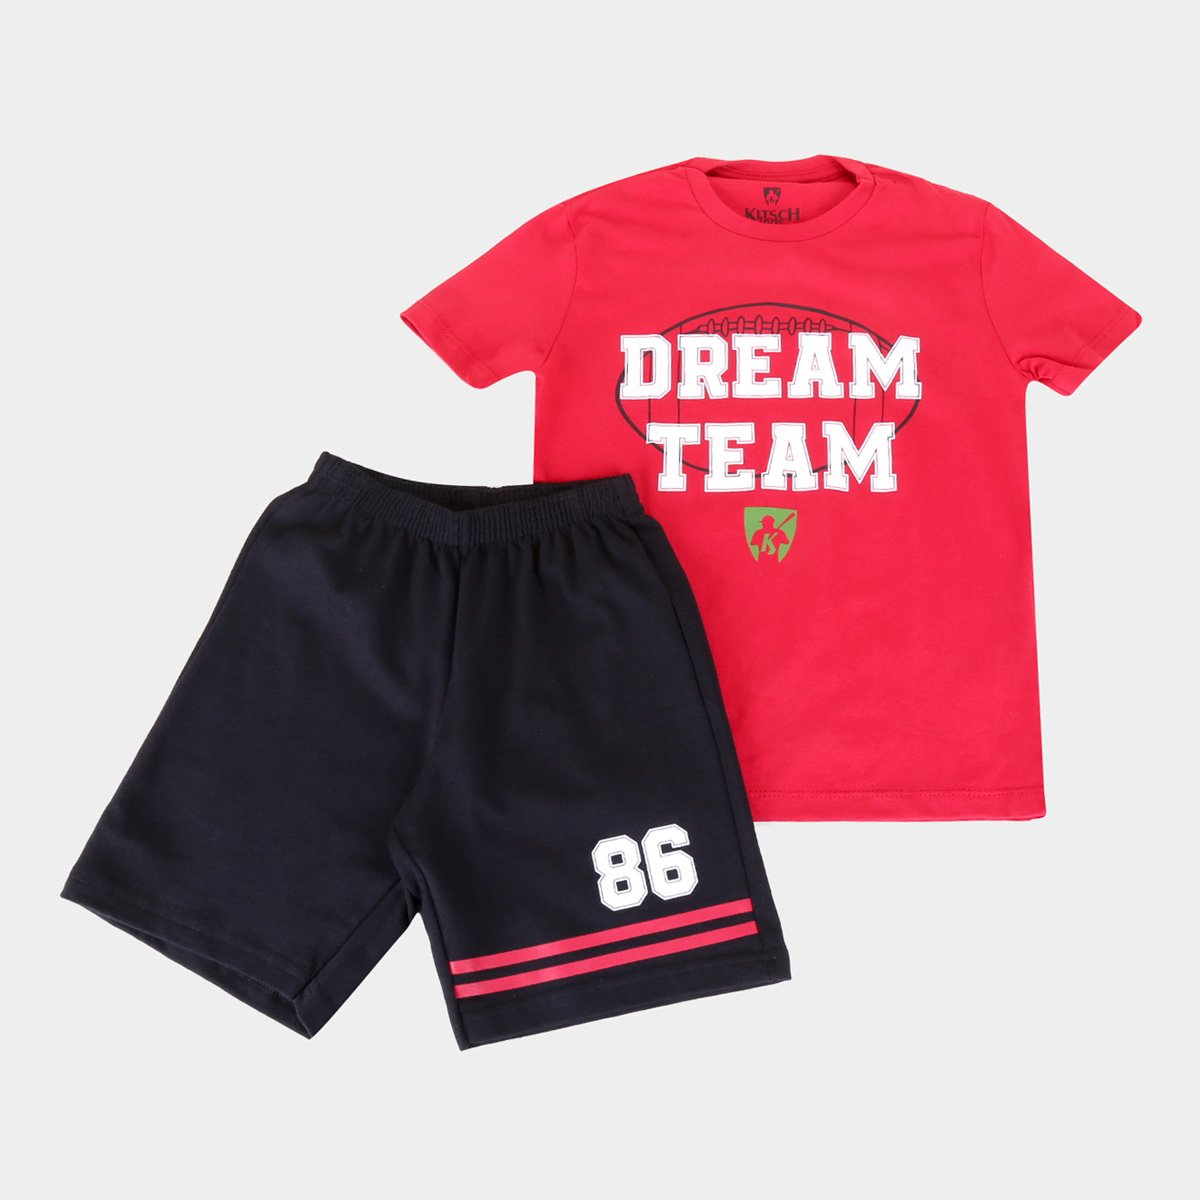 Conjunto Infantil MR. Kitsch Dream Team Camiseta + Short Masculino